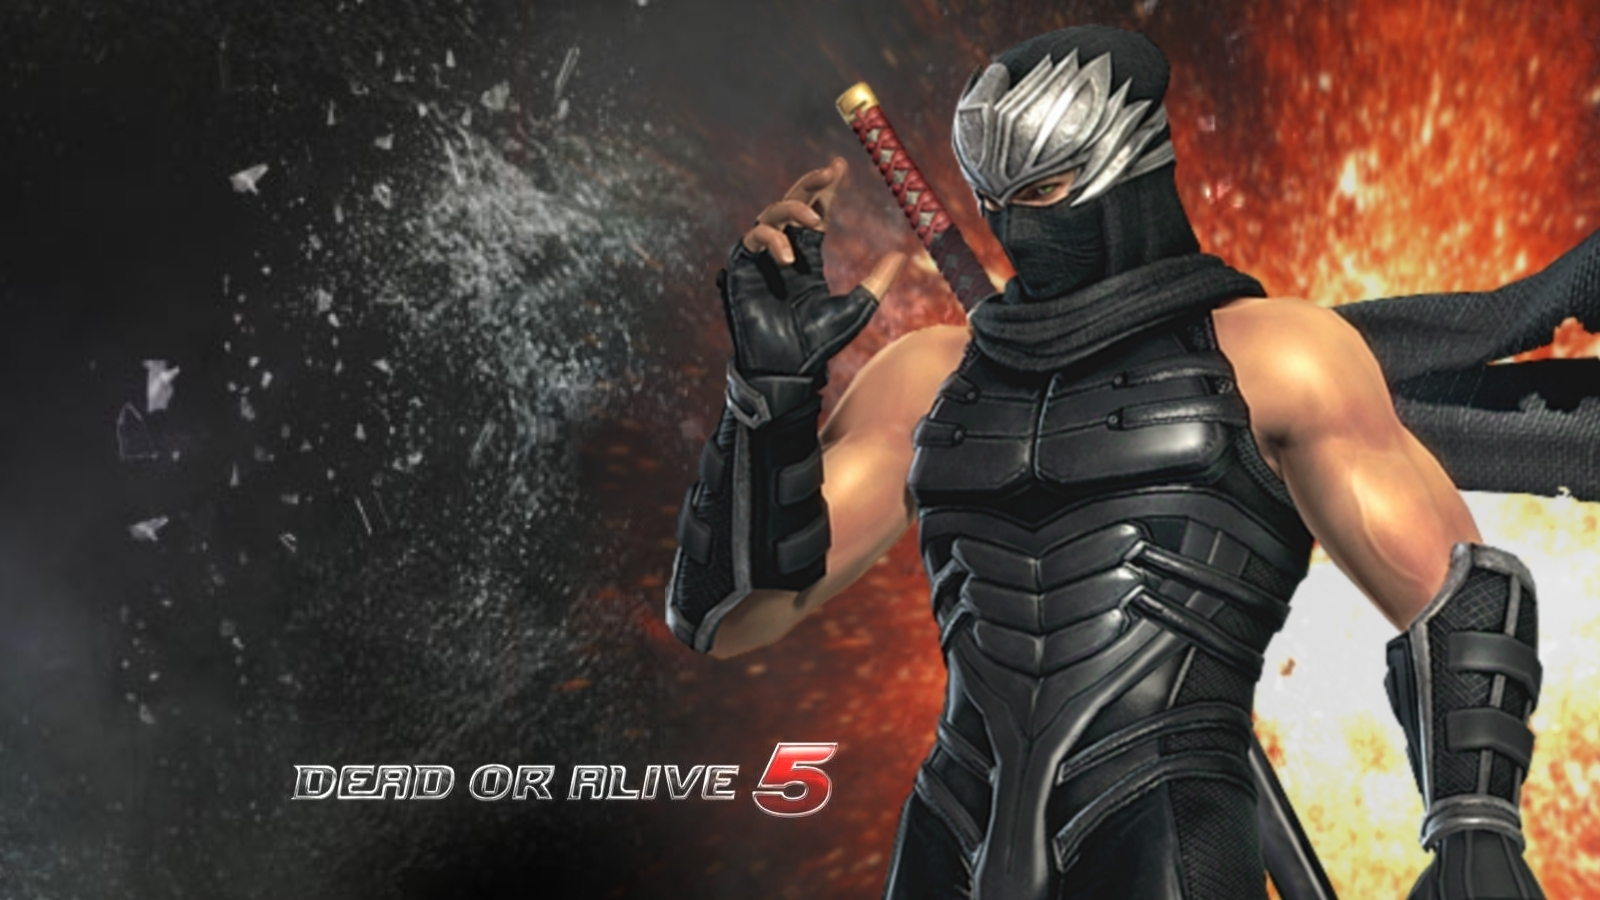 Ryu_Hayabusa_DOA_5_Game_Wallpaper.jpg